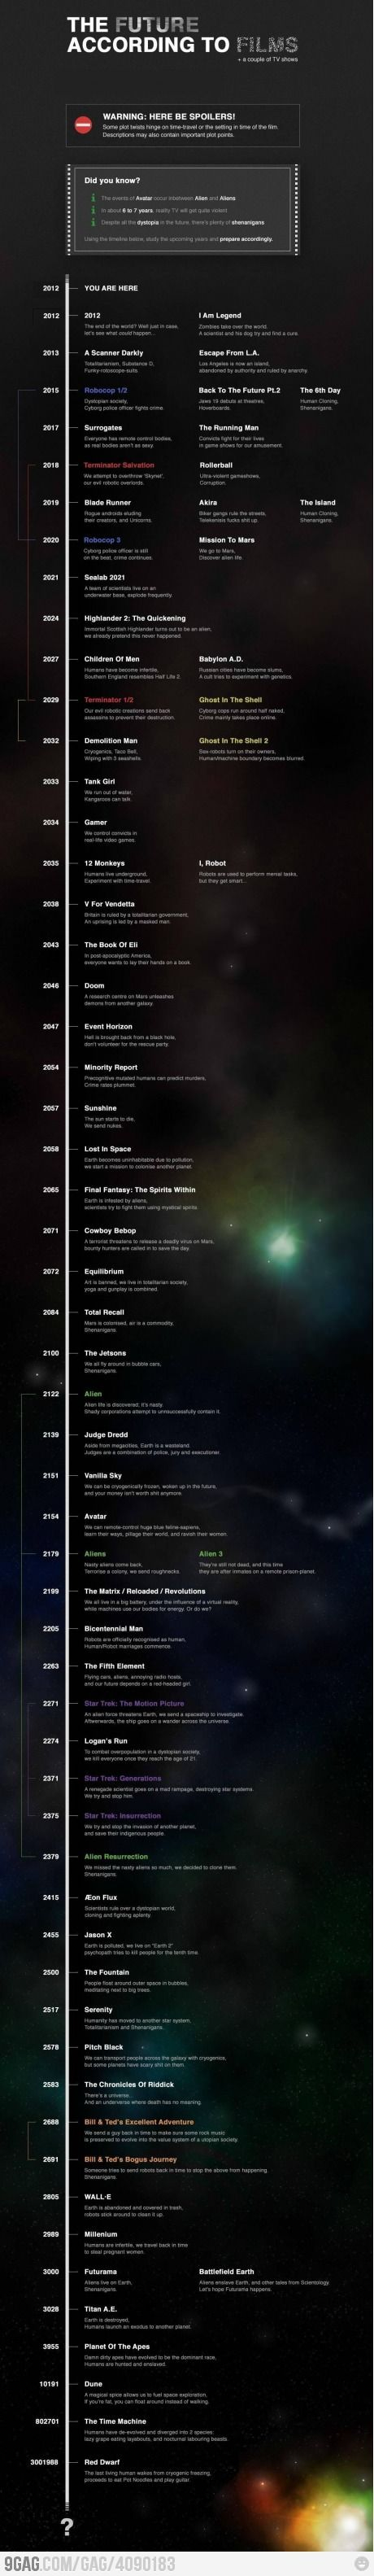 Sci-Fi Schedule - What we have to look forward to.